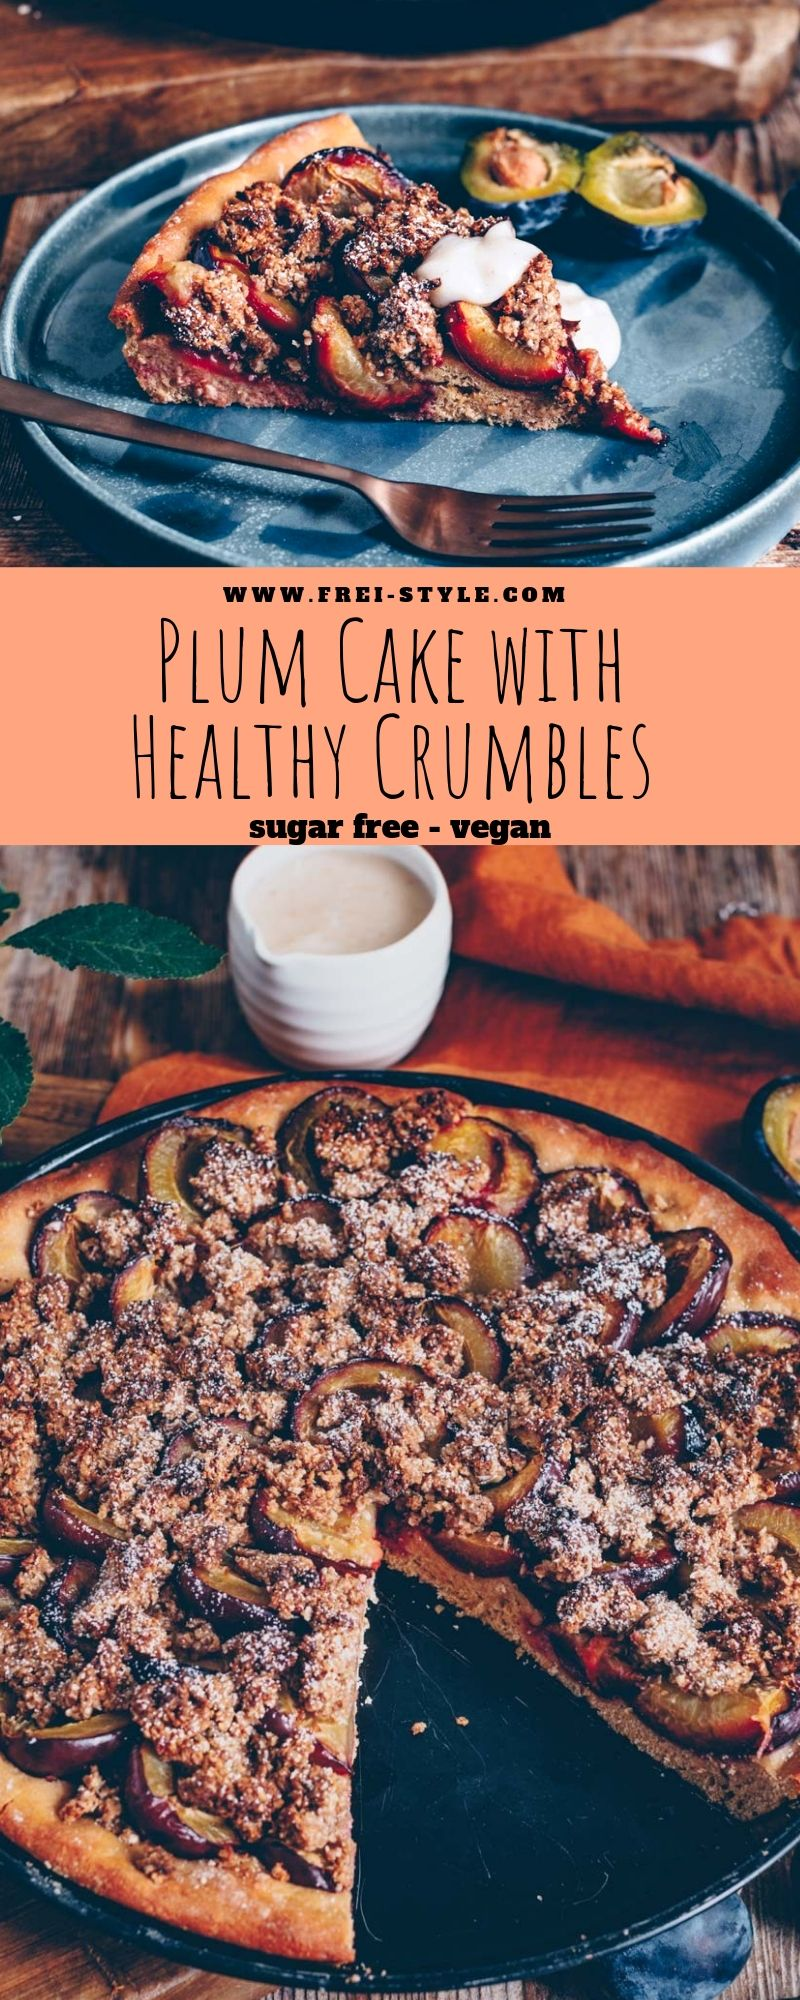 Plum cake with healthy crumbles